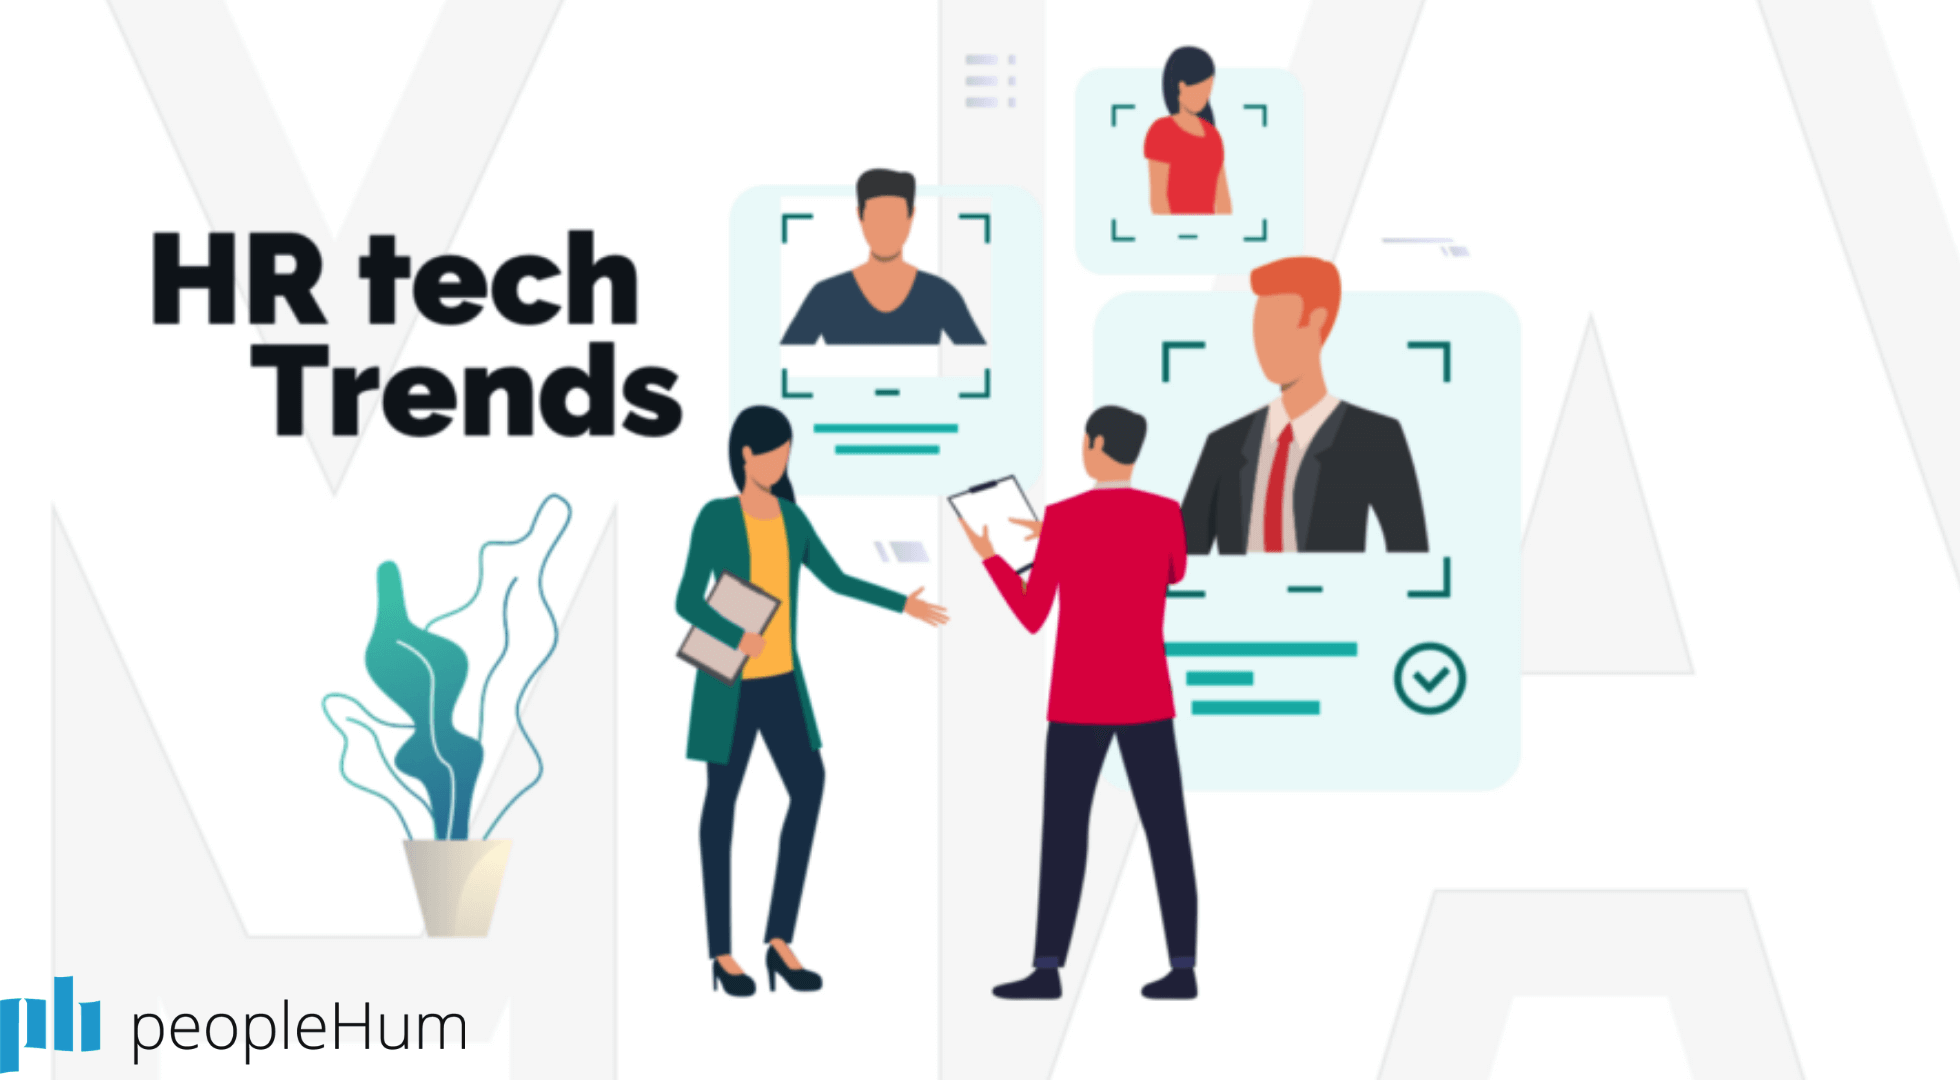 7 HR tech trends to look out for in 2021